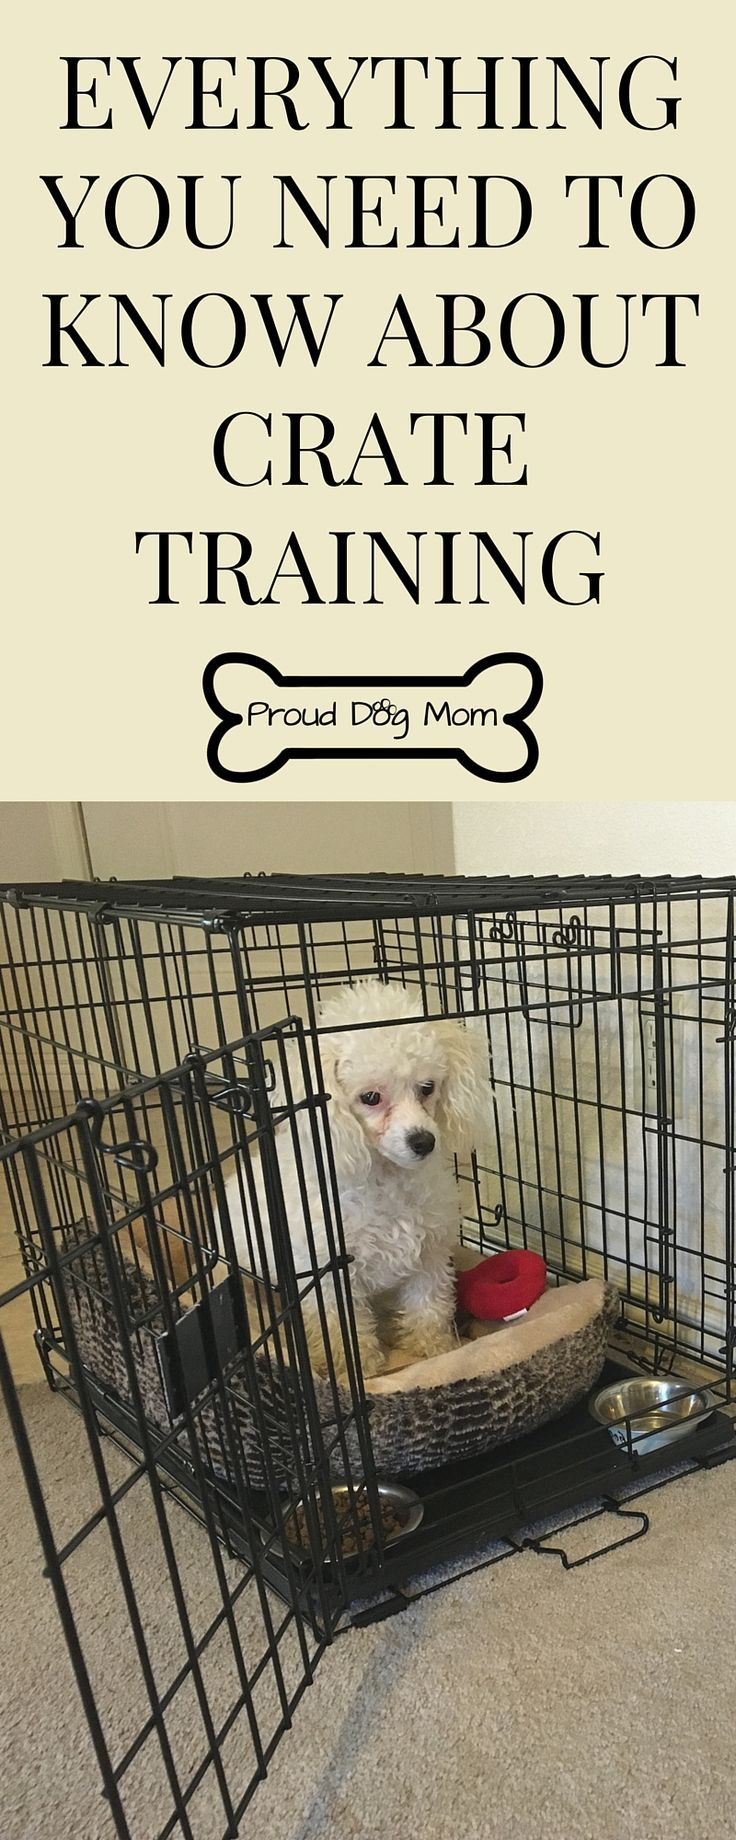 My Dog's Experience With The Crate. Plus, Everything You Need To Know About Crate Training | Dog Training Tips |